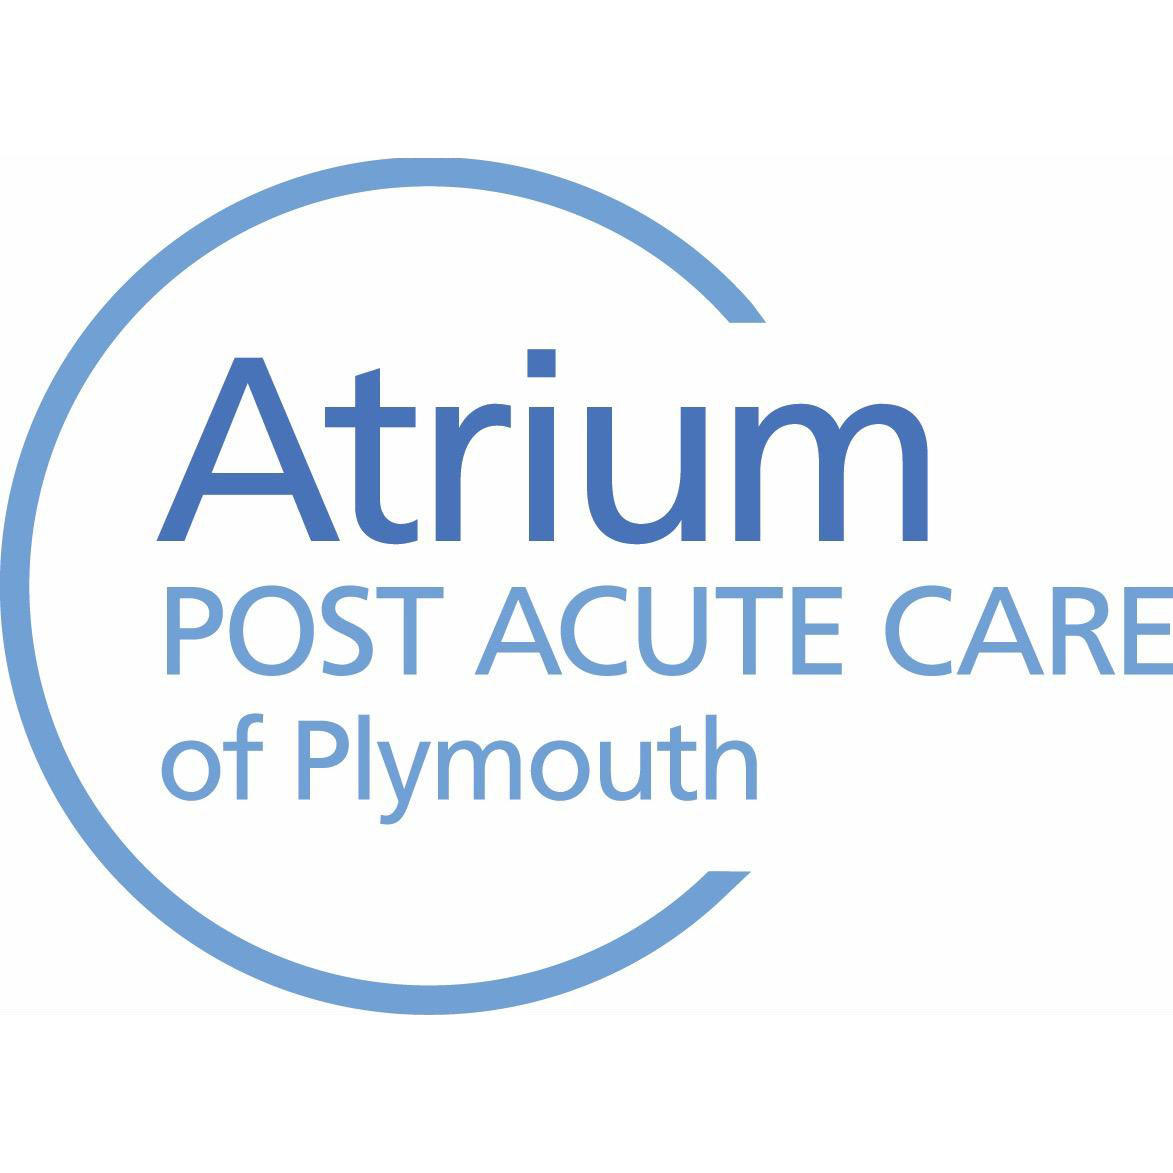 Atrium Post Acute Care of Plymouth